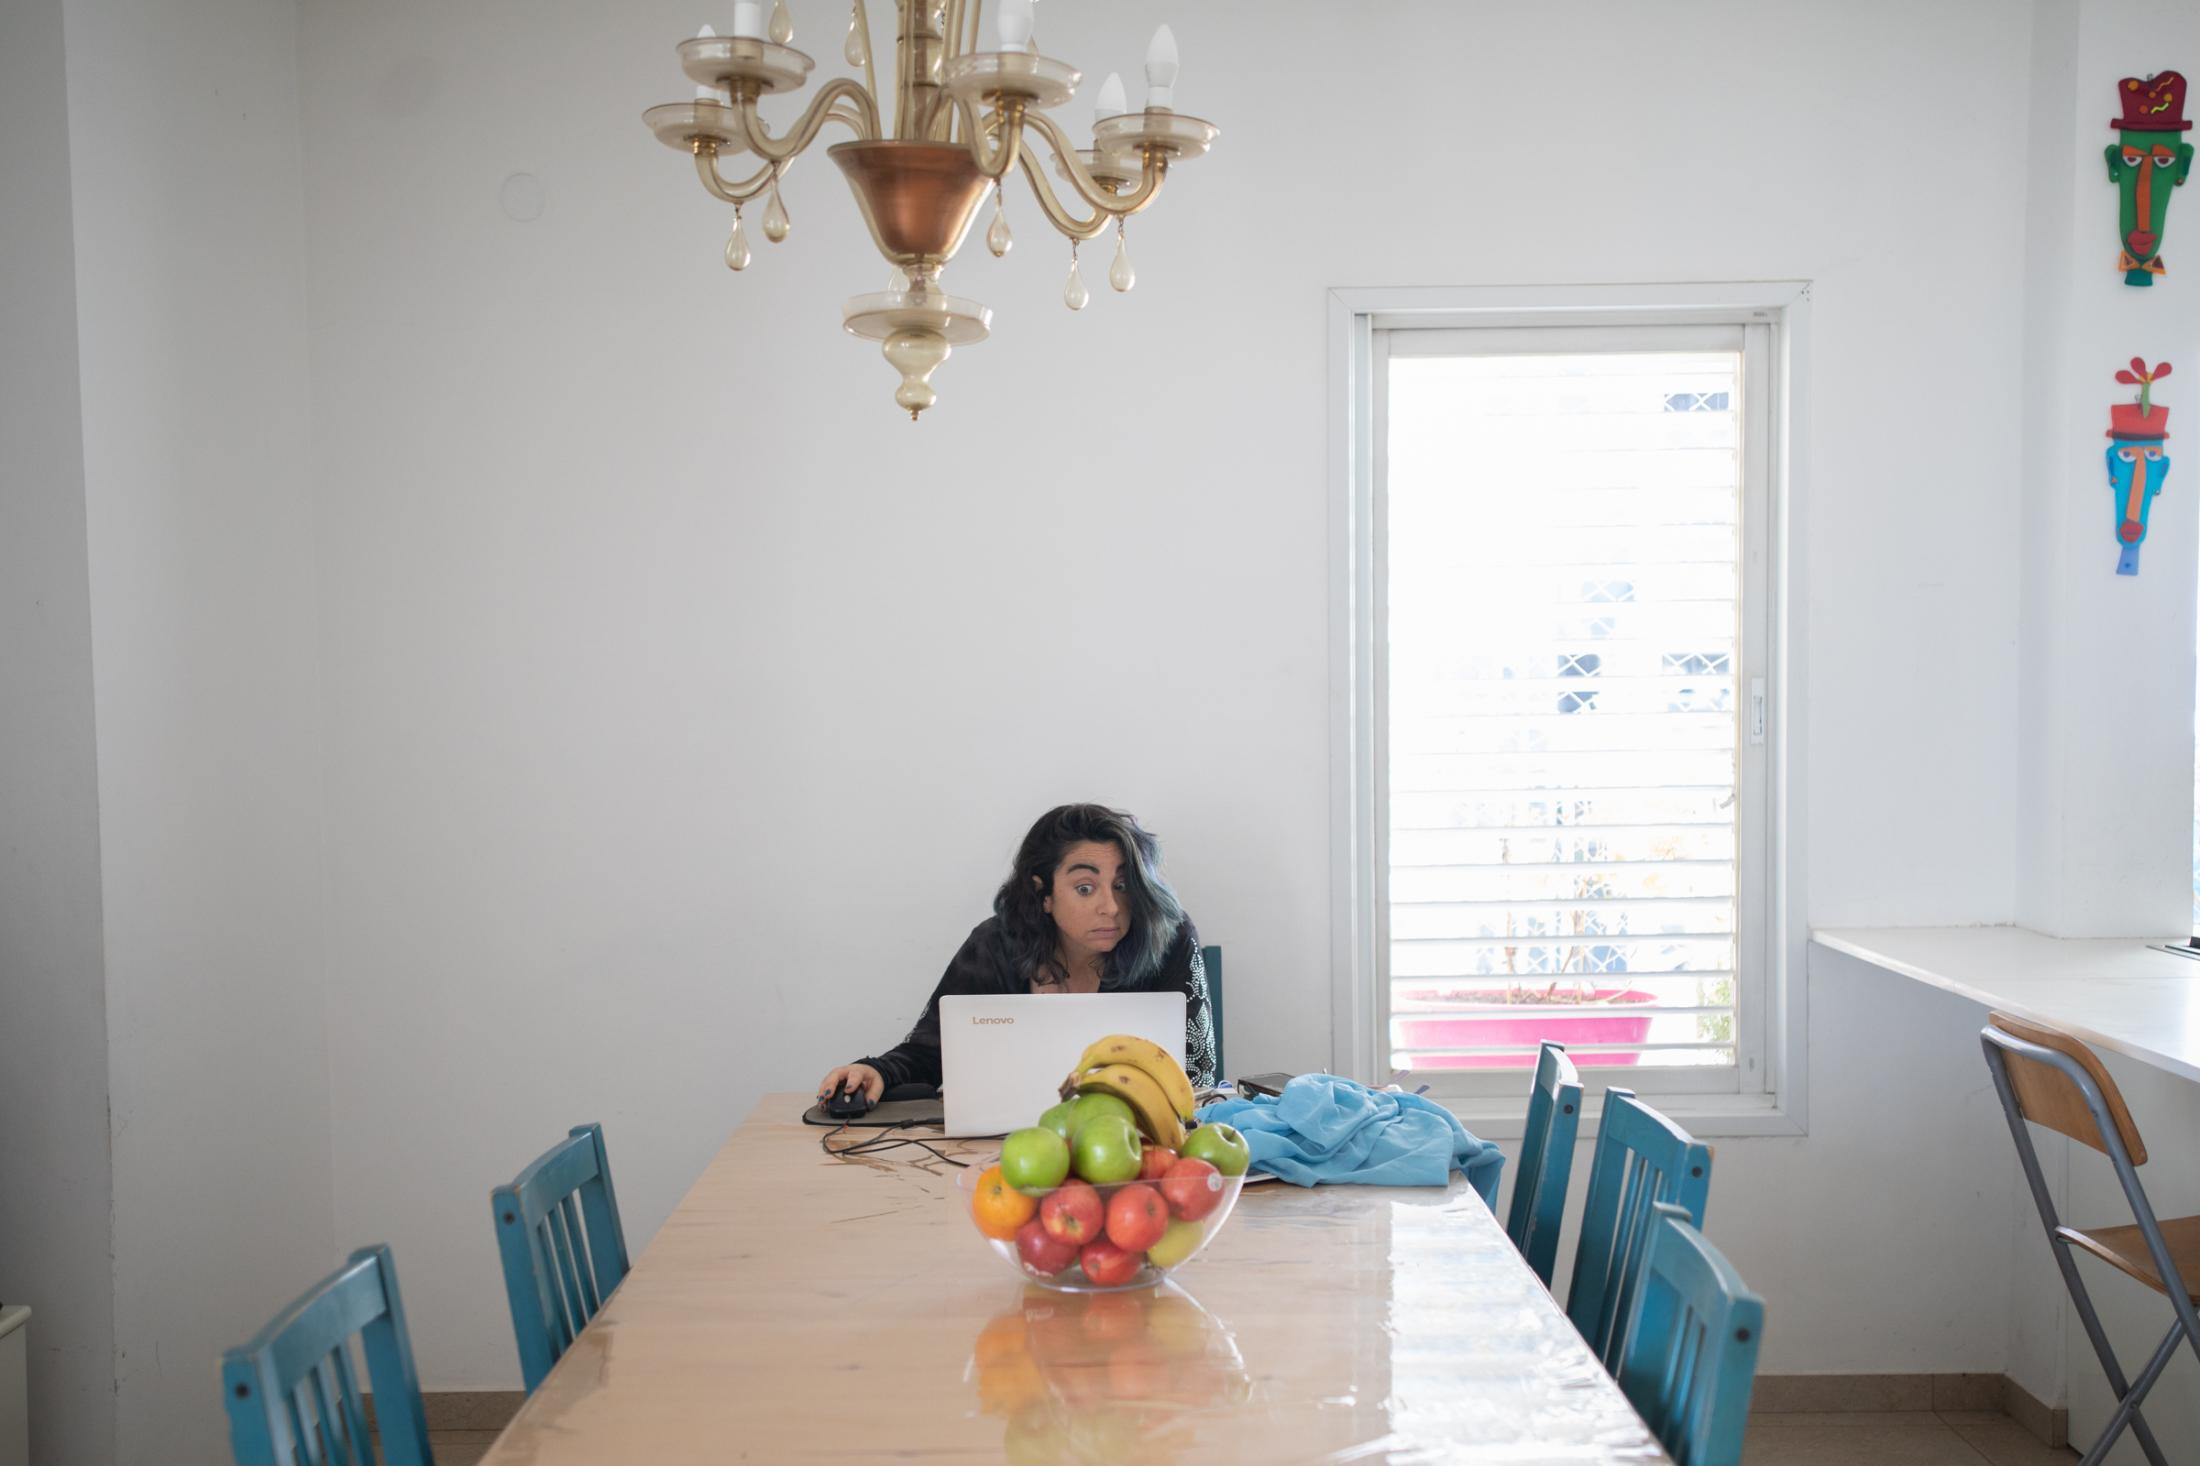 """Theatre director Yael Bartenosh, 43, gives an online theatre lesson for children on Zoom in her home in Rehovot, Israel, April 28, 2020. """"I closed my adults' group, because on Zoom it wasn't teaching theatre, it was just like teaching acting in front of a camera. And it wasn't what I wanted. But for the children I felt they need me as much as I need them. So I began to do more things that are fun and short, because online they don't have the attention."""""""